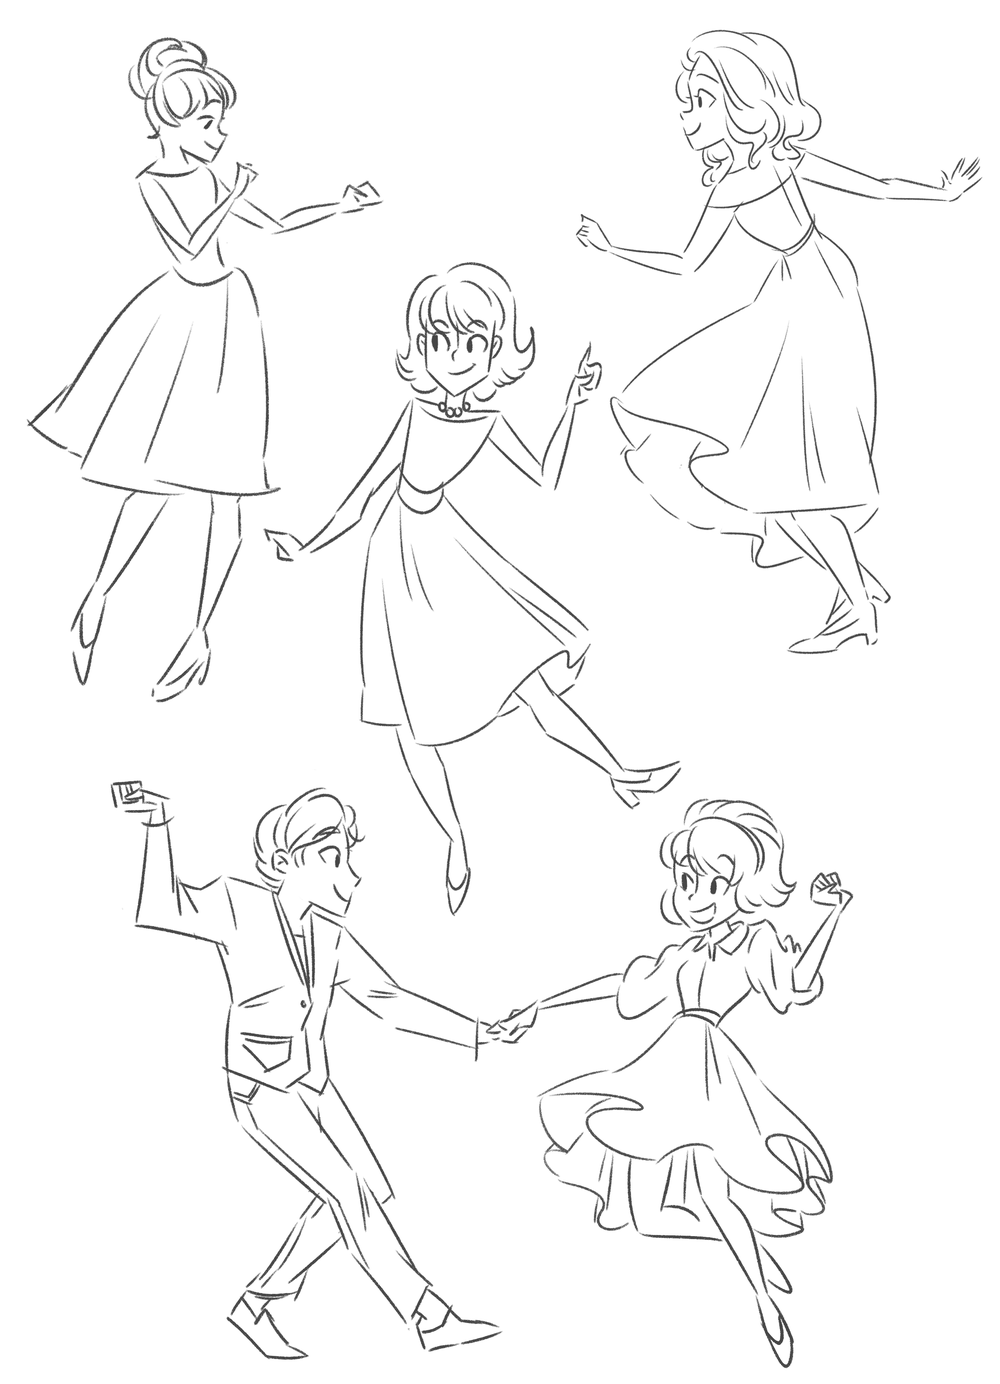 60s dance.png